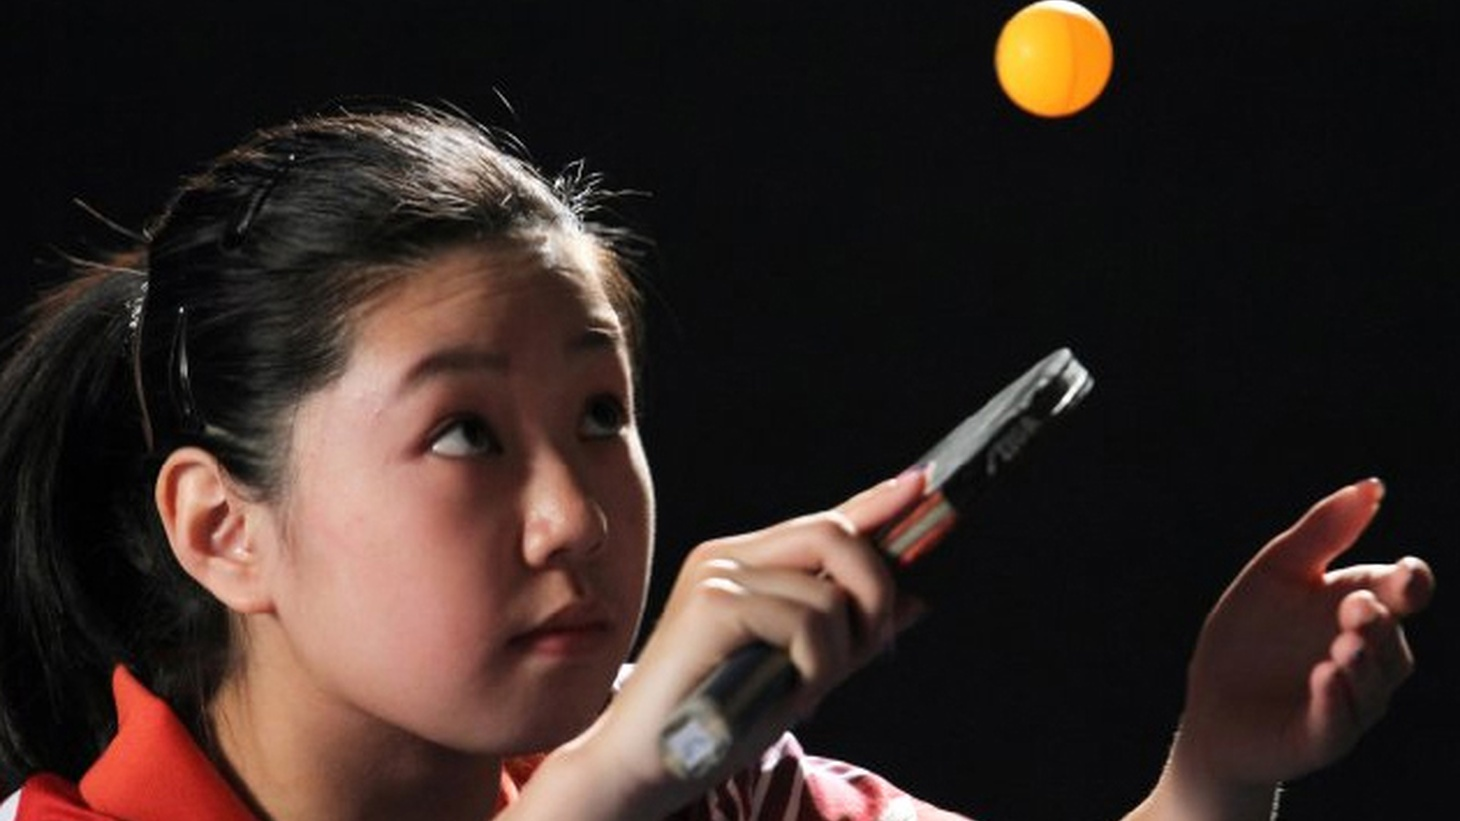 Top Spin starts ultra-slowly, then picks up speed. The subject of this documentary is table tennis -- or ping pong, for those of us who play it just for fun.